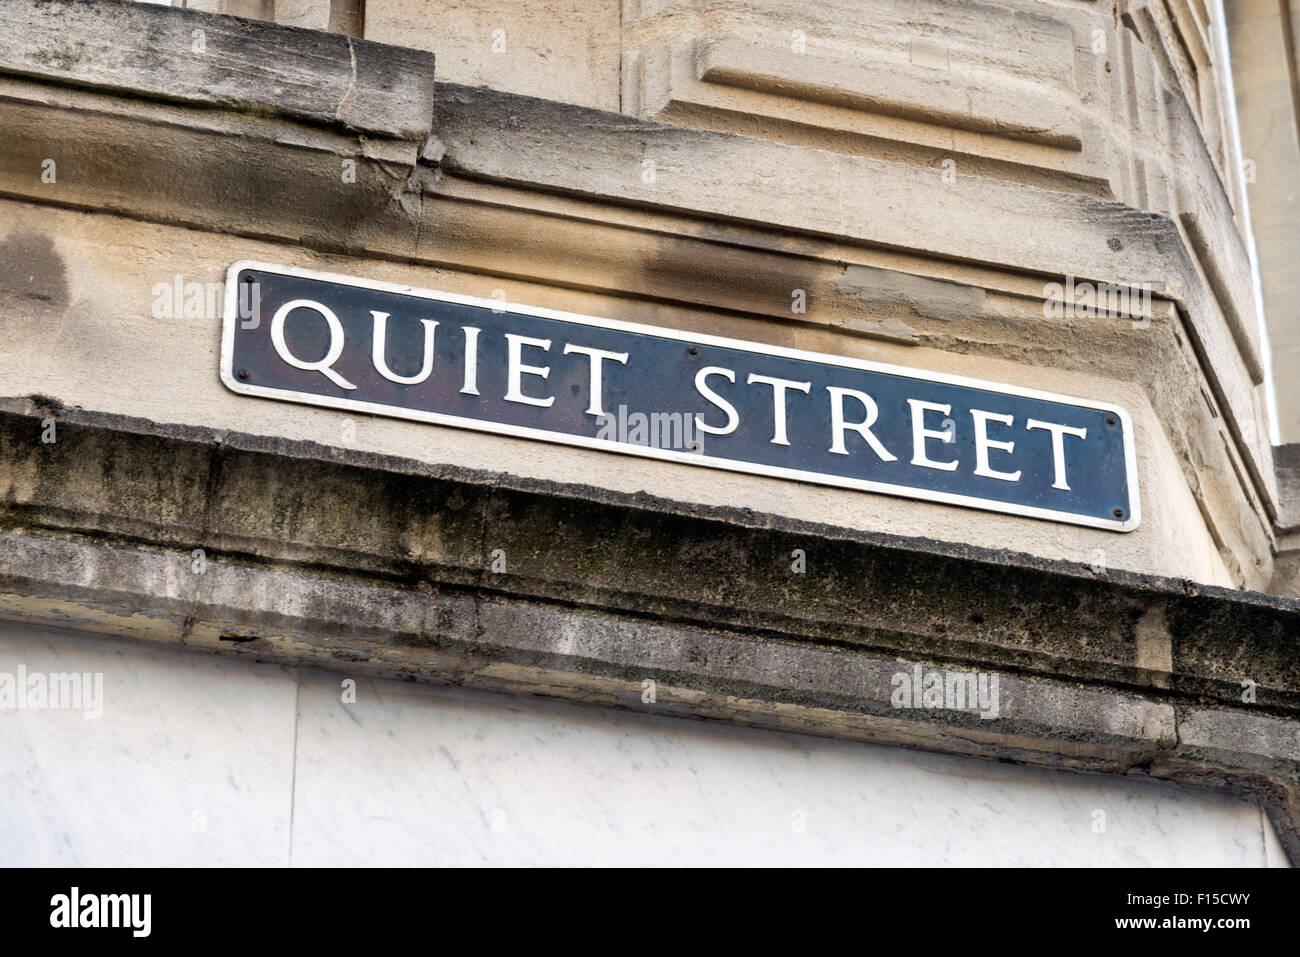 Quiet Street, Bath, Somerset, England, UK - Stock Image